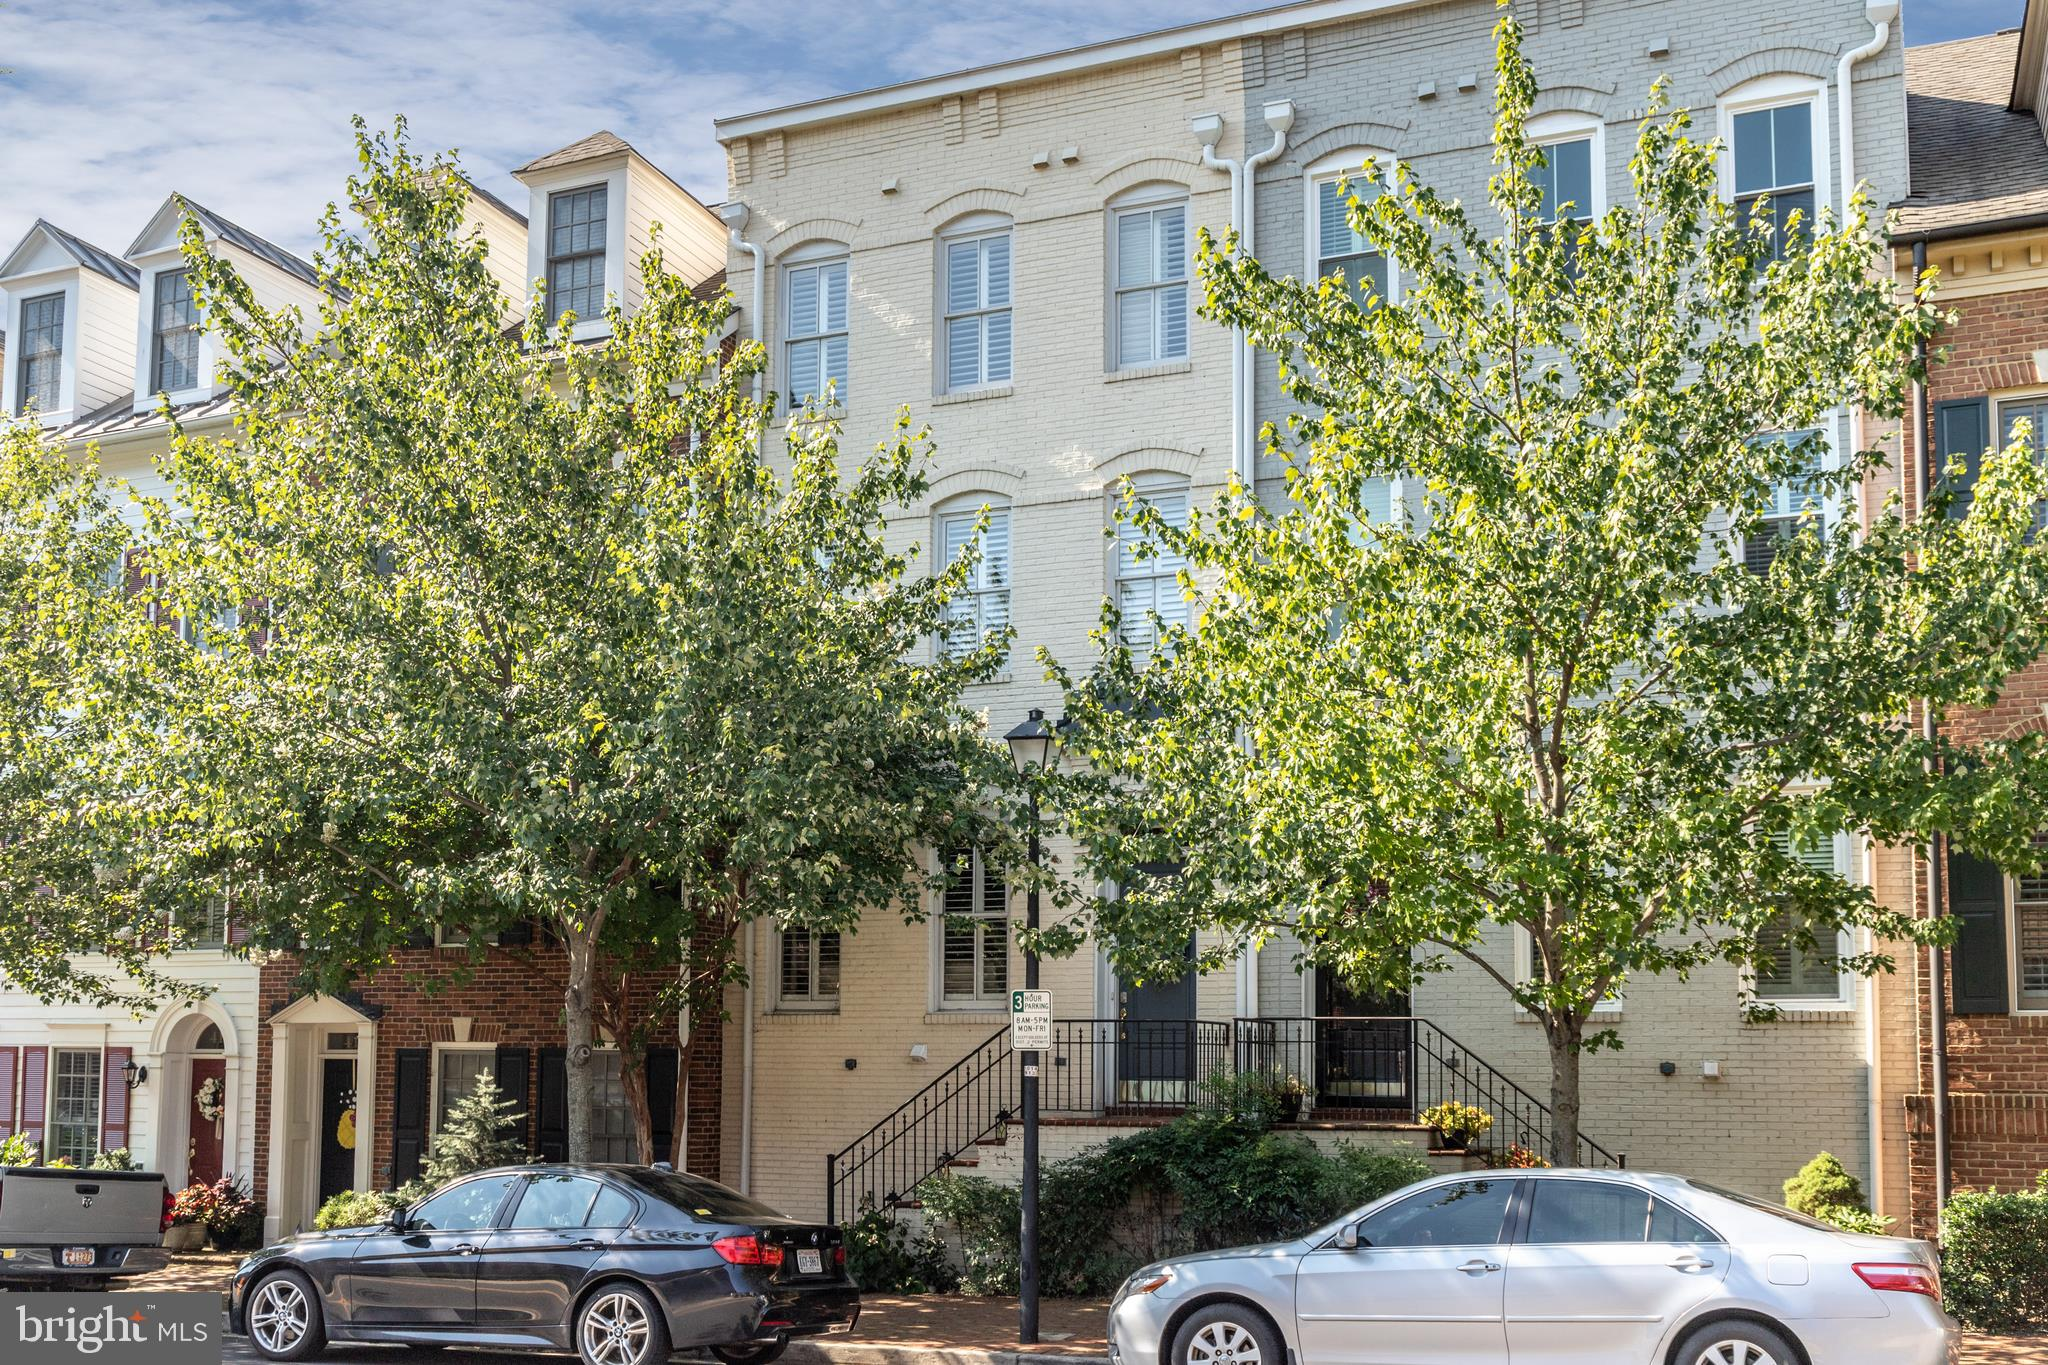 """Stunning 4 level 2 car garage town home is a mere 4 blocks from the water in Old Town Alexandria! Open the door and step onto a custom slate entry highlighted with a wall of natural stone!  Gleaming hardwoods greet you as you easily walk from the large living space to the dining area and the bright kitchen beyond! This gorgeous home in Chatham Square boasts a totally updated open floor plan with a gourmet chefs kitchen, high-end appliances and a large island with bar seating! Upscale plantation shutter adorn the windows and make for convenient living. The lower level boasts a 2-car garage with loads of storage and a custom media room with a 75"""" large screen TV and a gas fireplace! The second level has a large master suite complete with large walk-in closet and a spa-like master bathroom with a soaking tub, large shower and dual vanities! The second bedroom has another full bathroom along with another walk-in closet. Continue up to the 4th level and be greeted with a large open flex space which can be easily used as an office, family room or guest area! This is also the level where you can step out onto the Roof-top Terrace and sit and relax. This home also conveys with a lovely Pagoda which provide shady relief when needed.  This is truly a rooftop Oasis!  The third bedroom is also on this level with the third full bathroom. Two HVAC units also make for comfortable living! The upstairs Heat Pump was replaced in 2018! This home is a short distance to Trader Joes, Harris Teeter and a plethora of Old Town shops, restaurants and trails and parks. Chatham Square even boasts its own tot lot! Enjoy the ease of Old Town living where everything is short distance away! Welcome Home!"""